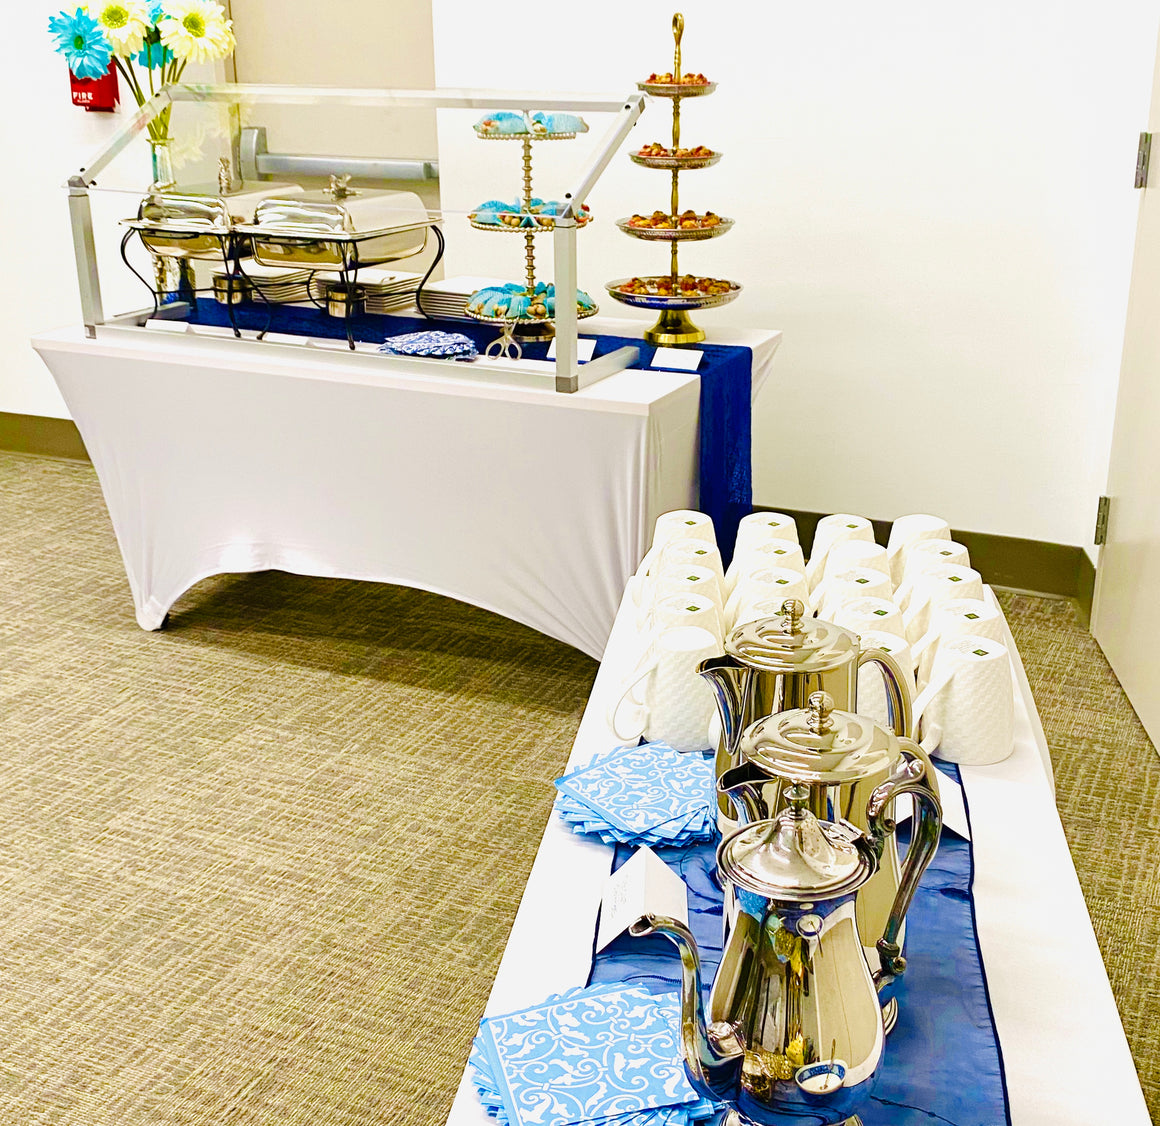 2020 CATERING BEAUTIFULLY & SAFELY DURING COVID-19 - FULL SERVICE GRADUATION PARTY